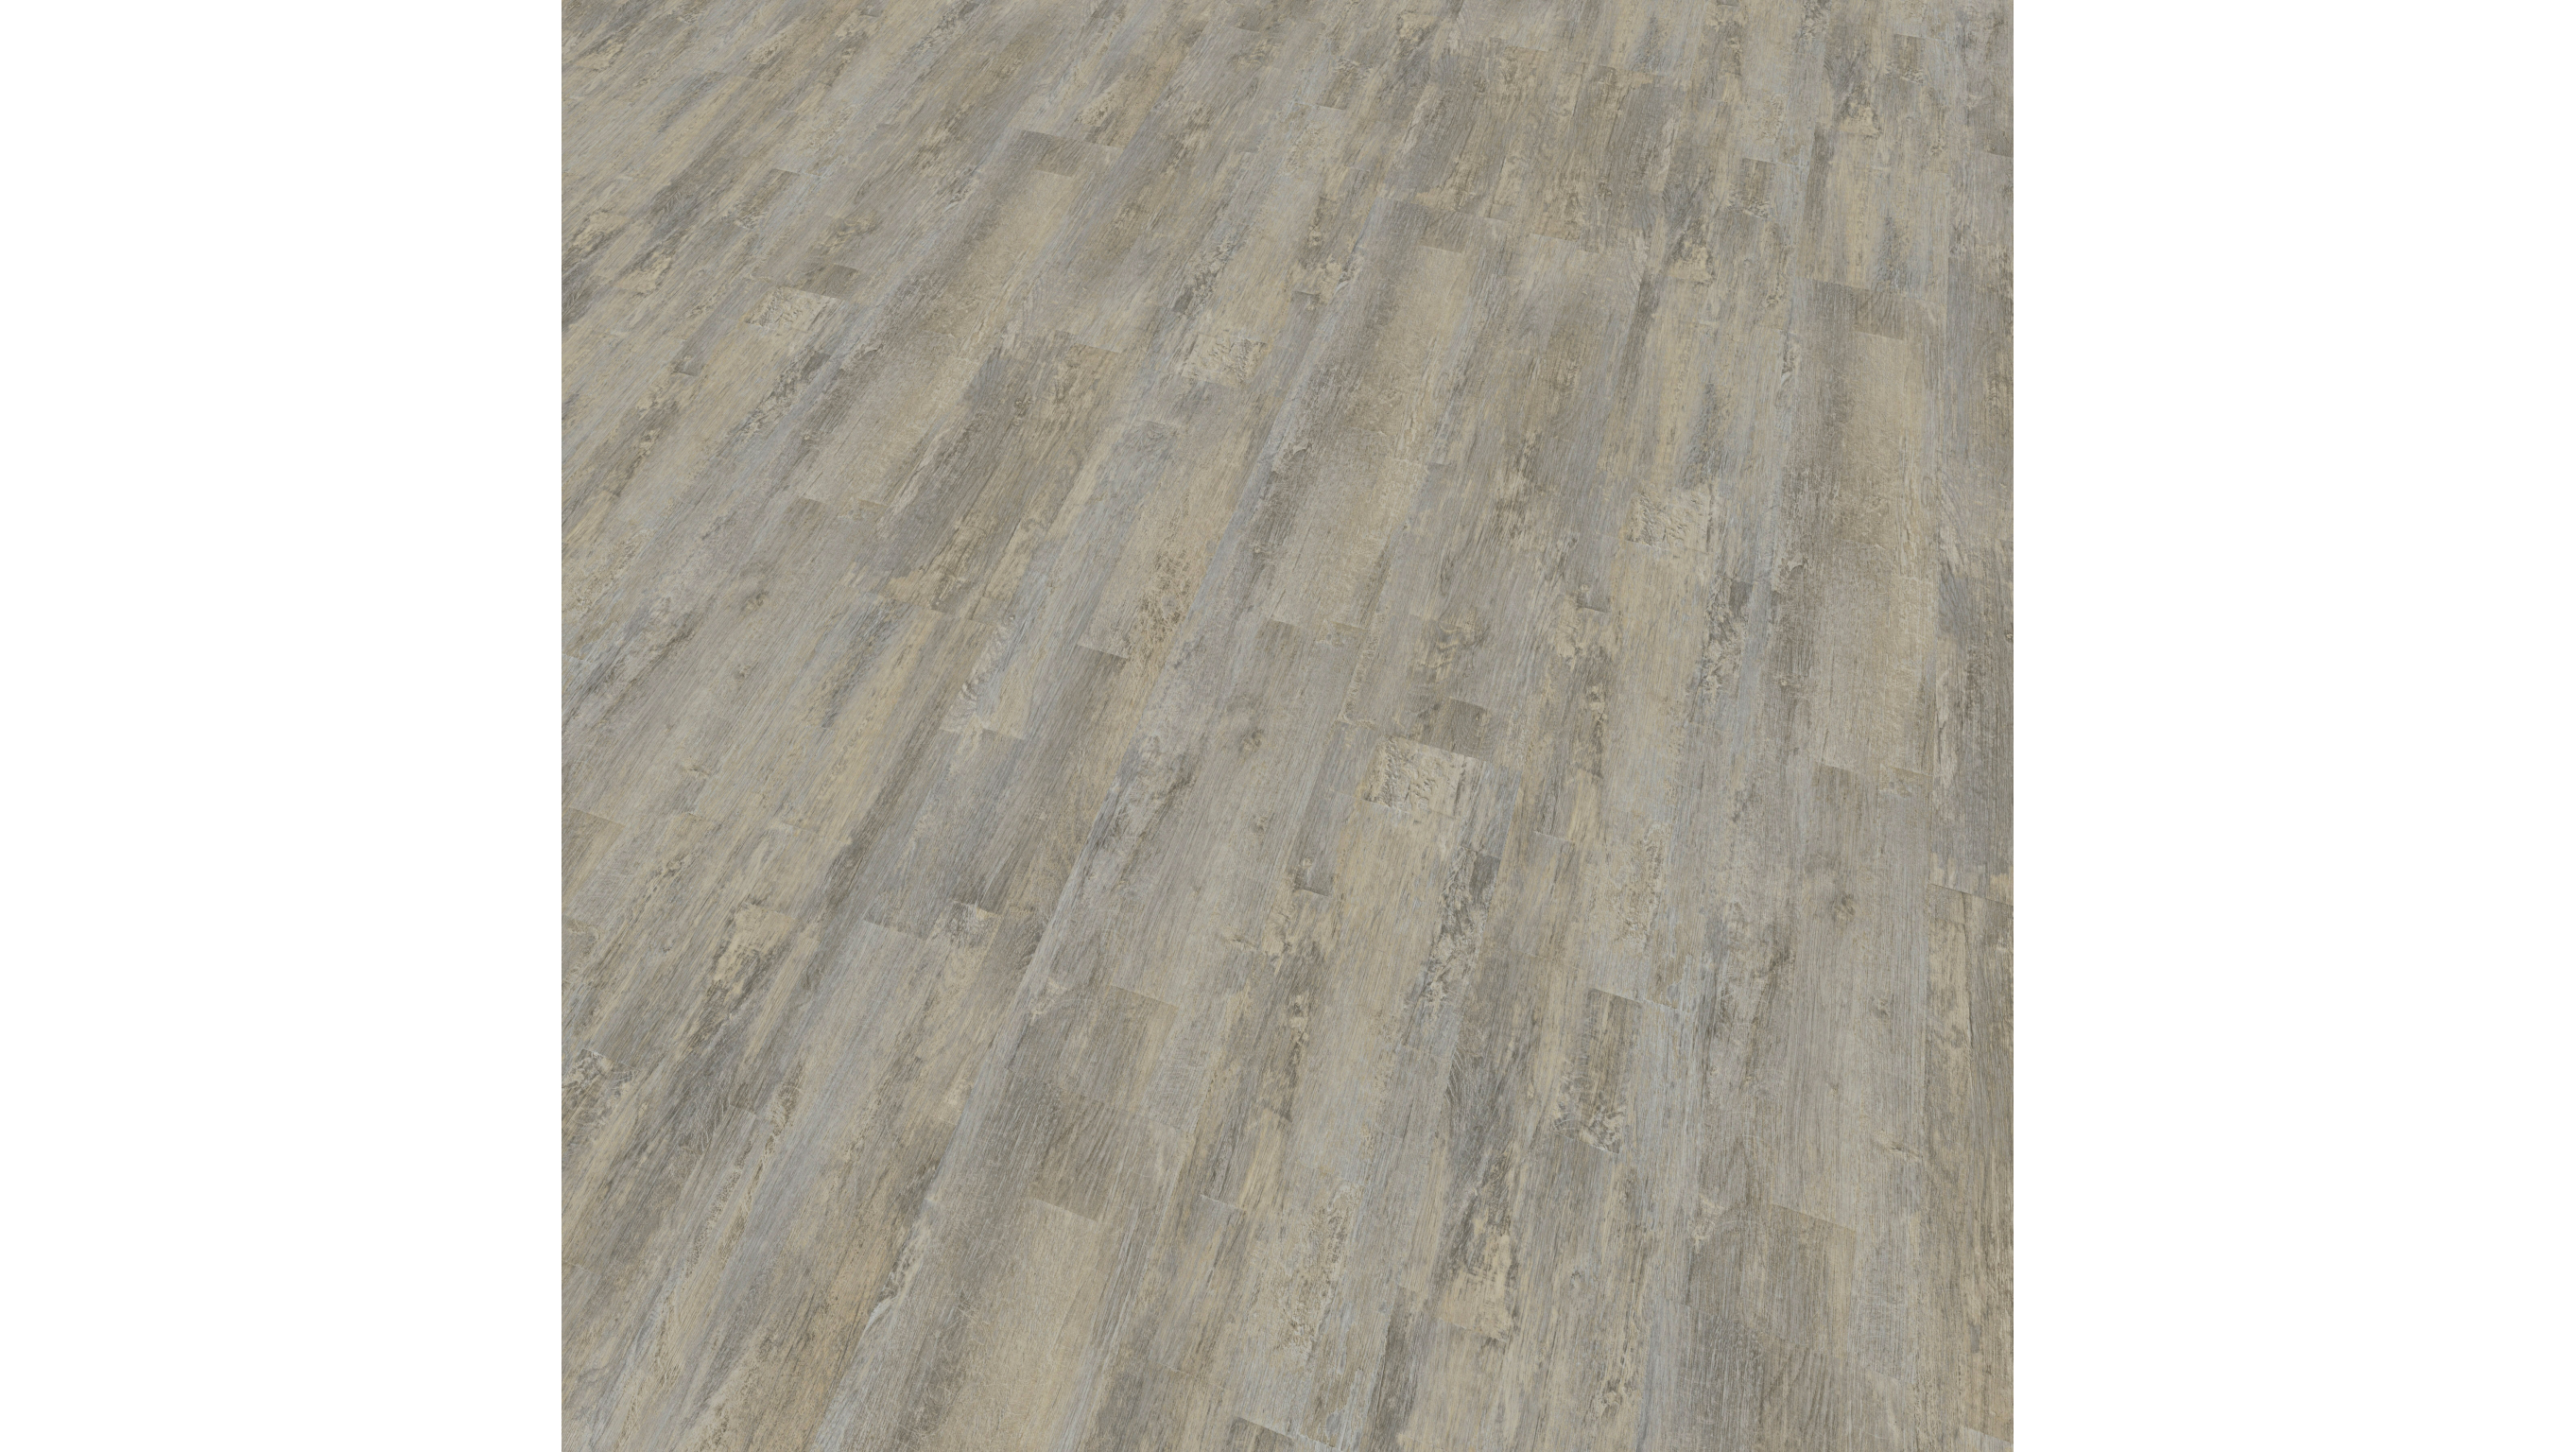 timber oak cardamon mflor pvc vloer gratis mflor pvc stalen